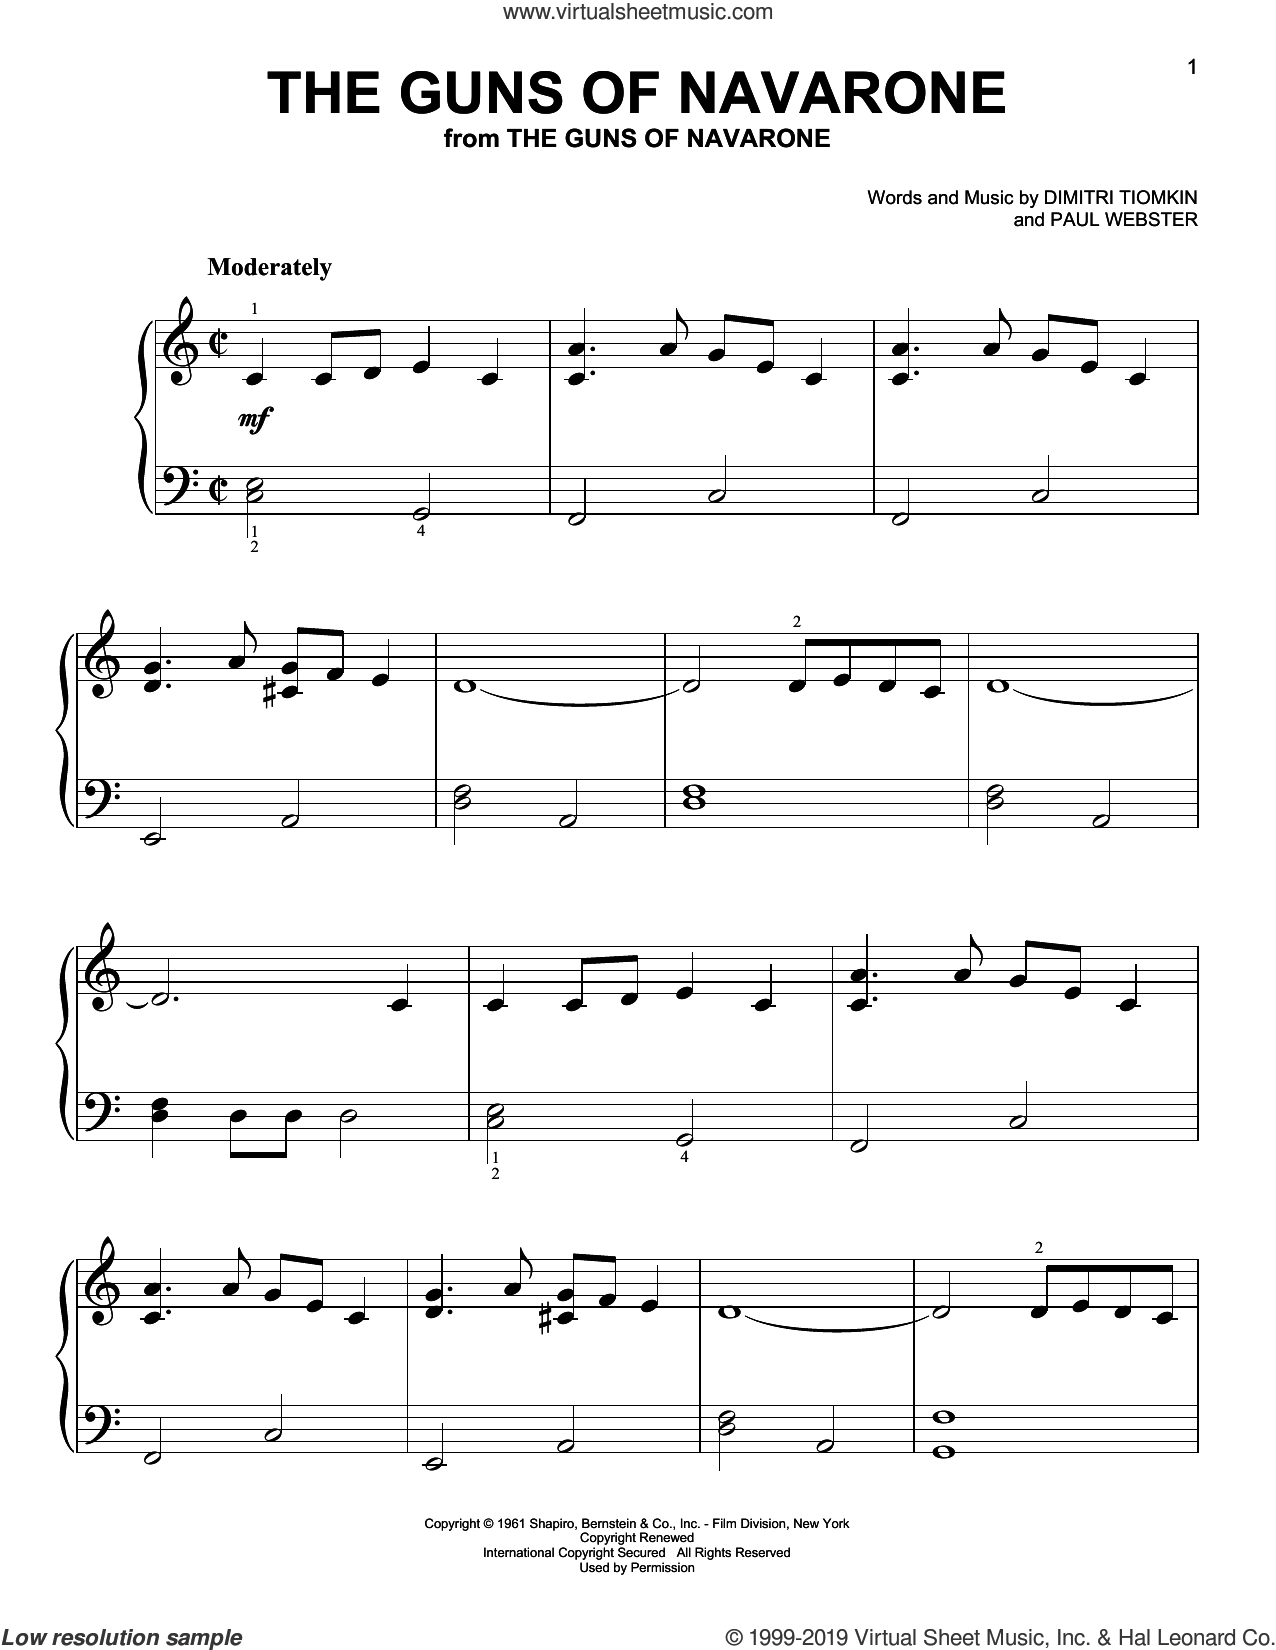 The Guns Of Navarone (from The Guns of Navarone) sheet music for piano solo by Paul Francis Webster and Dimitri Tiomkin, beginner skill level